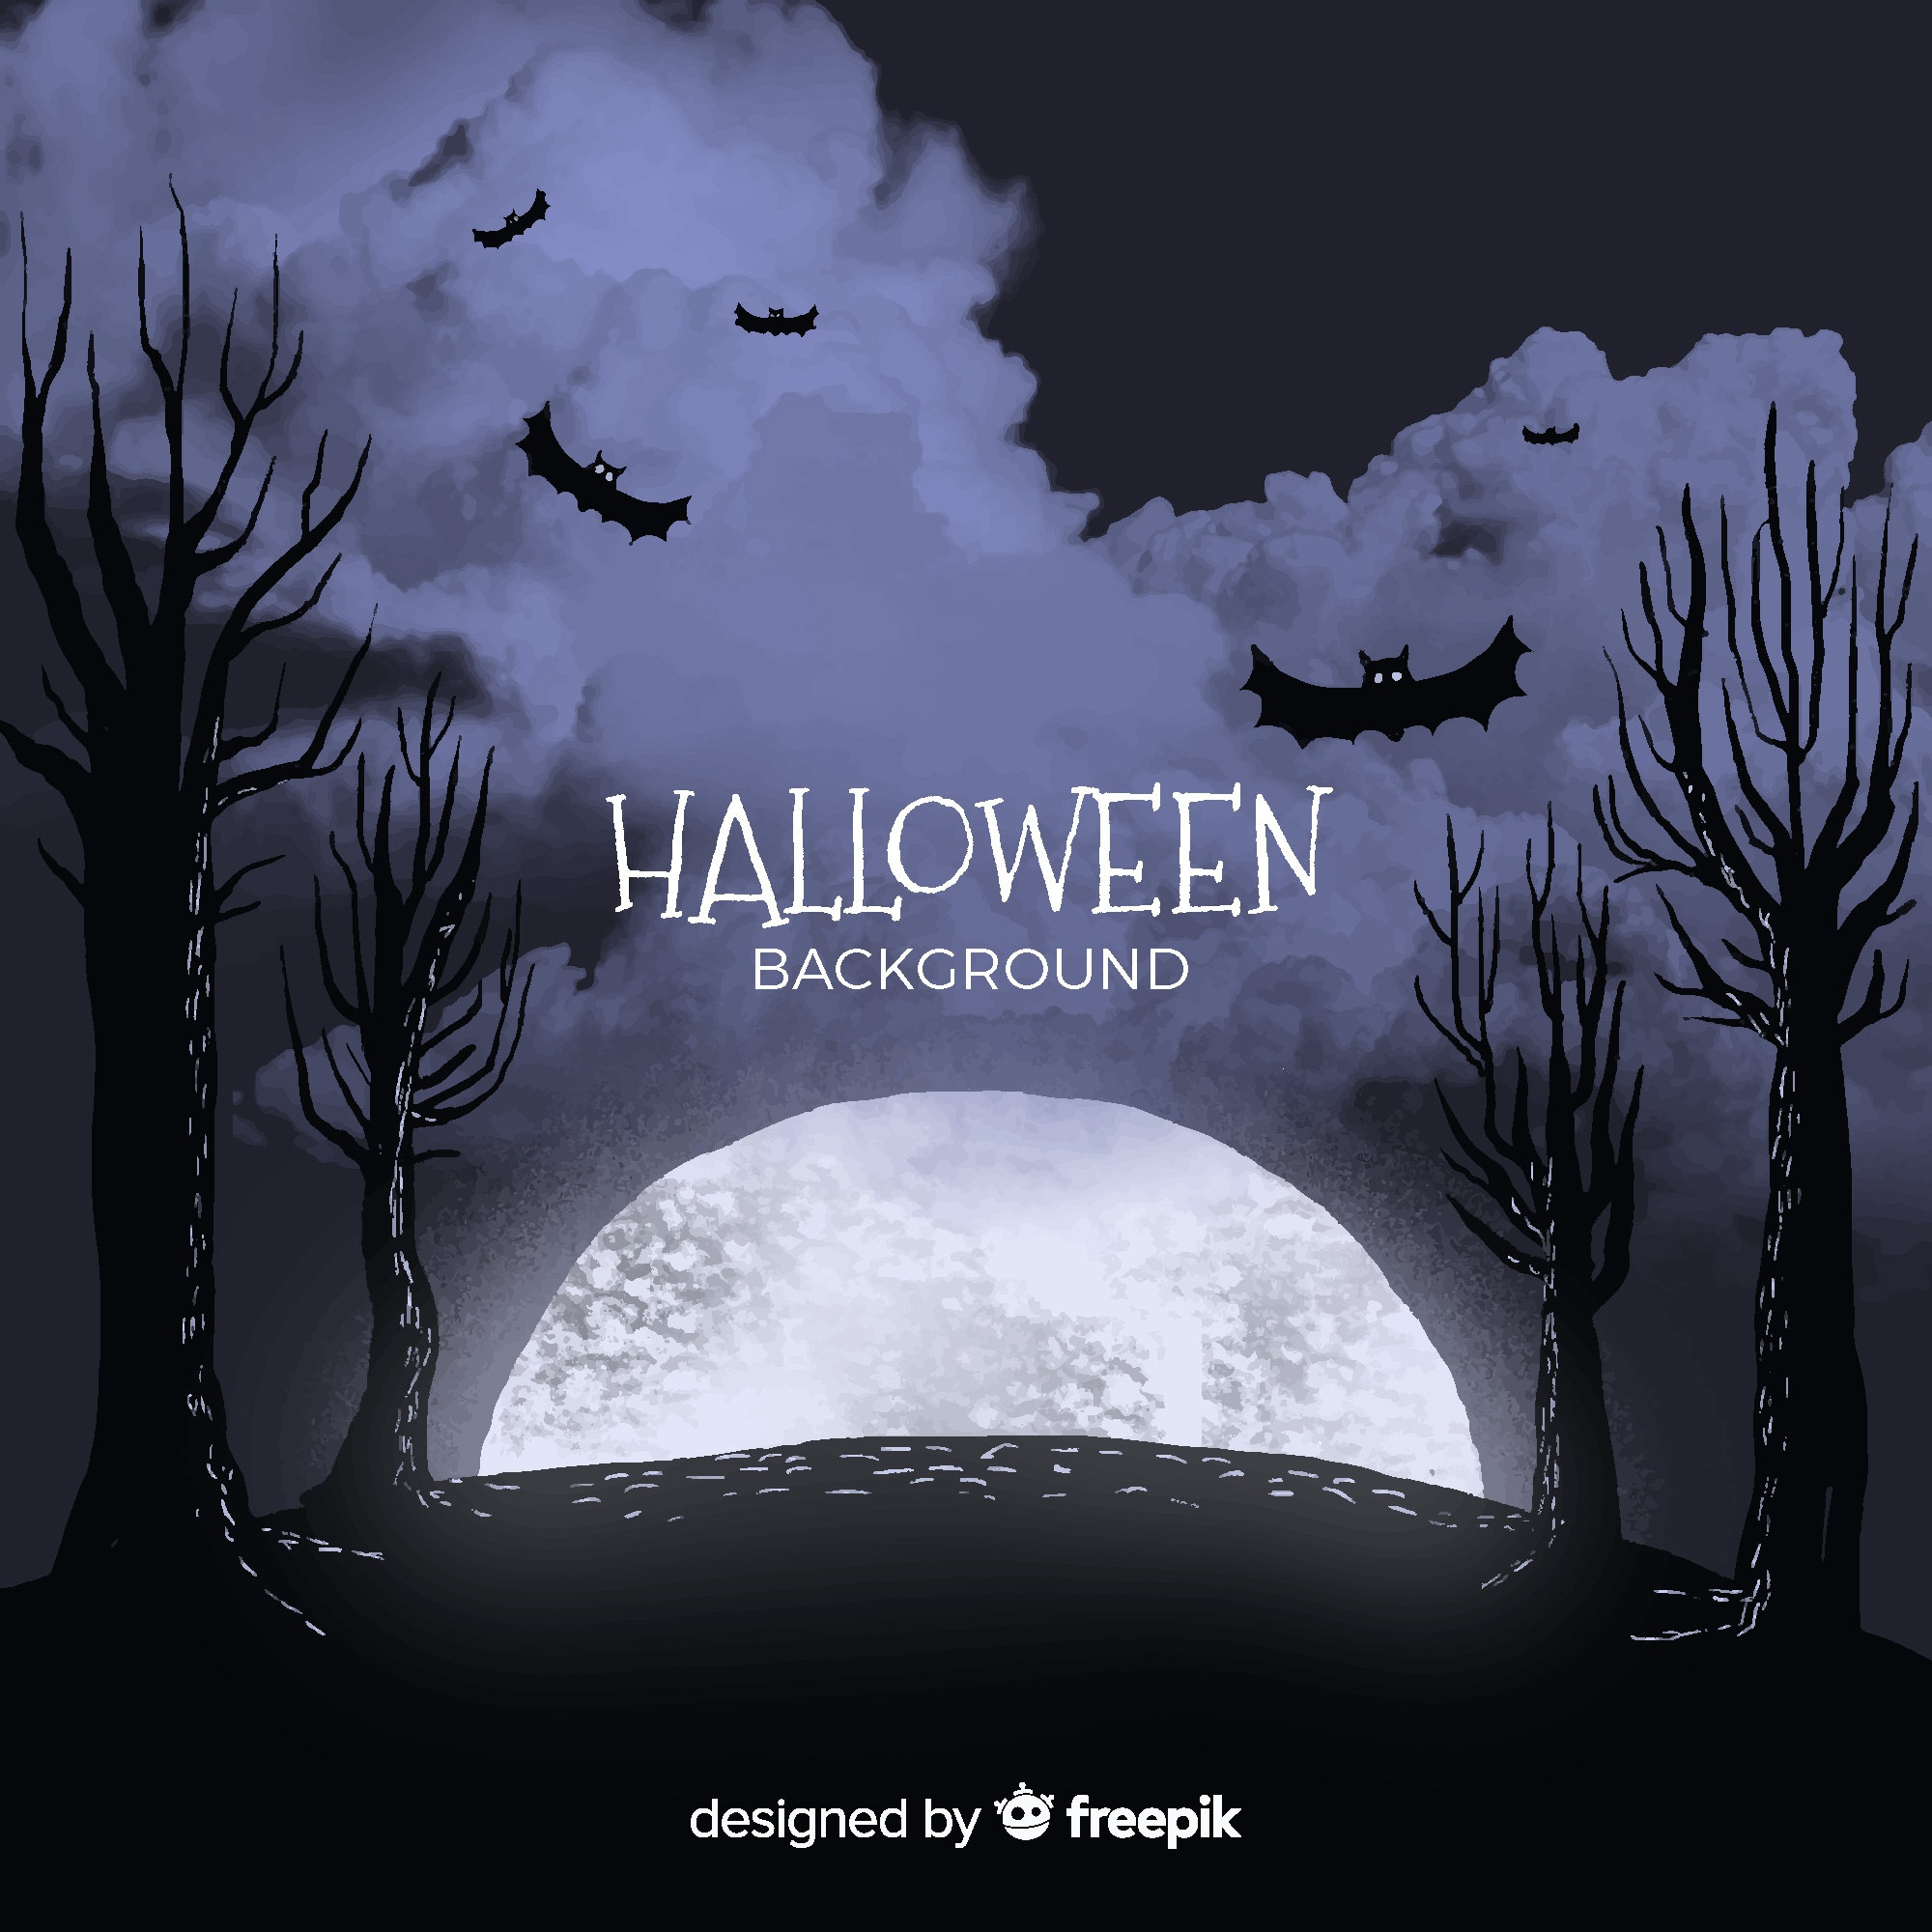 Halloween background with full moon, bats and trees